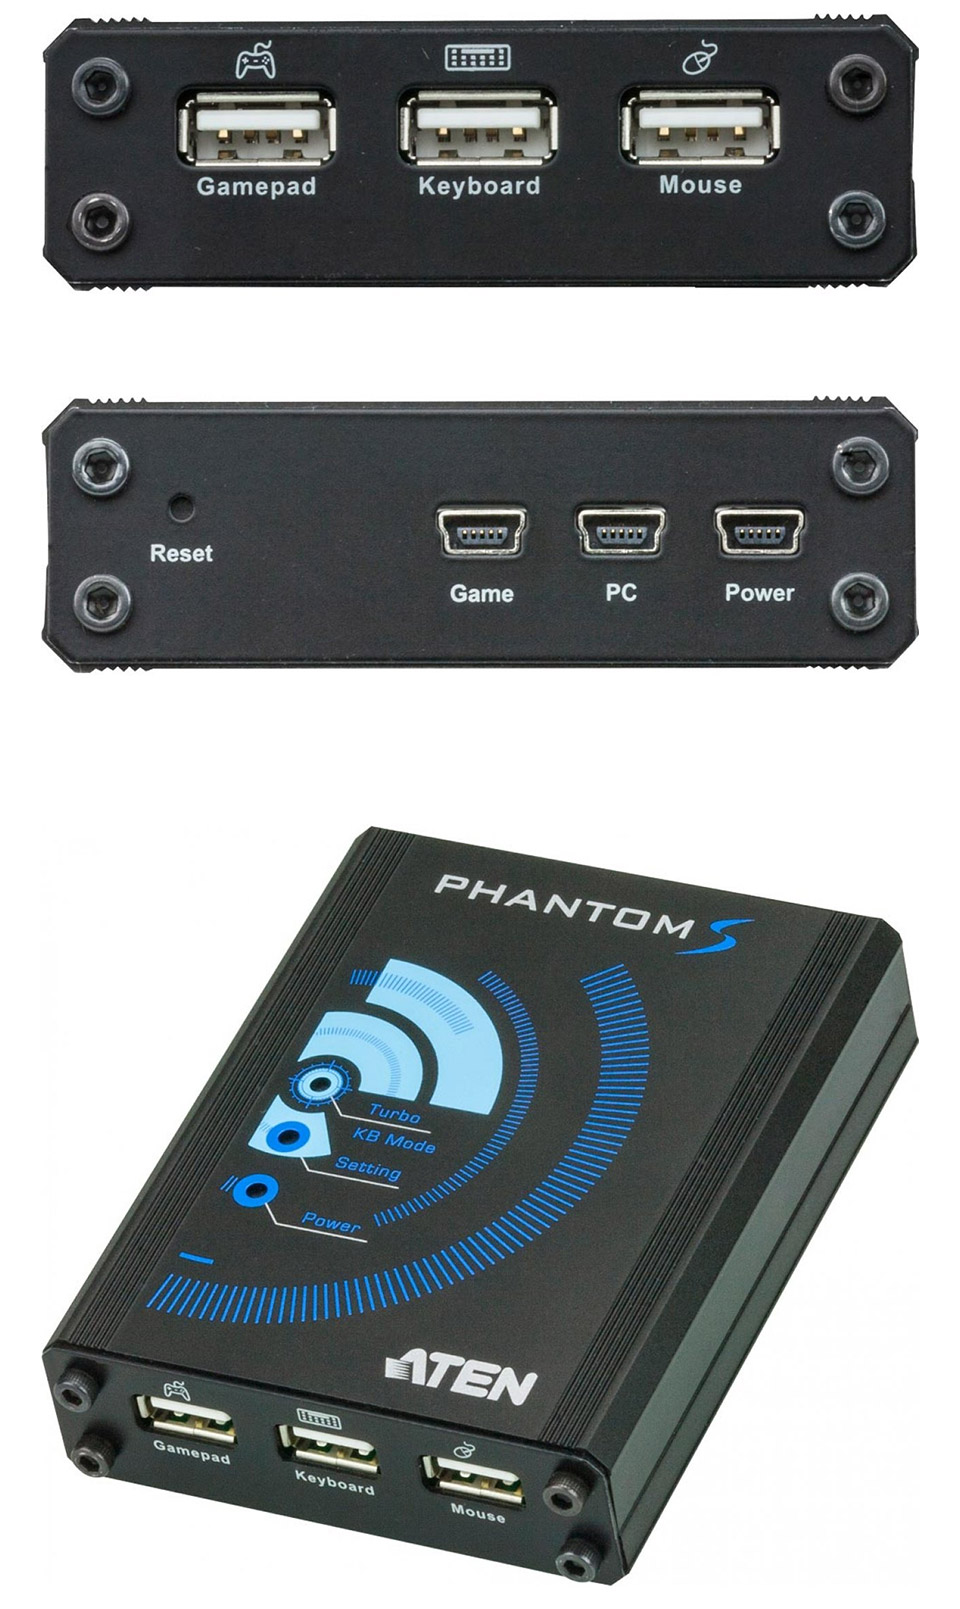 ATEN Phantom-S Gamepad Emulator for PS4 & Xbox One [UC-410] : PC